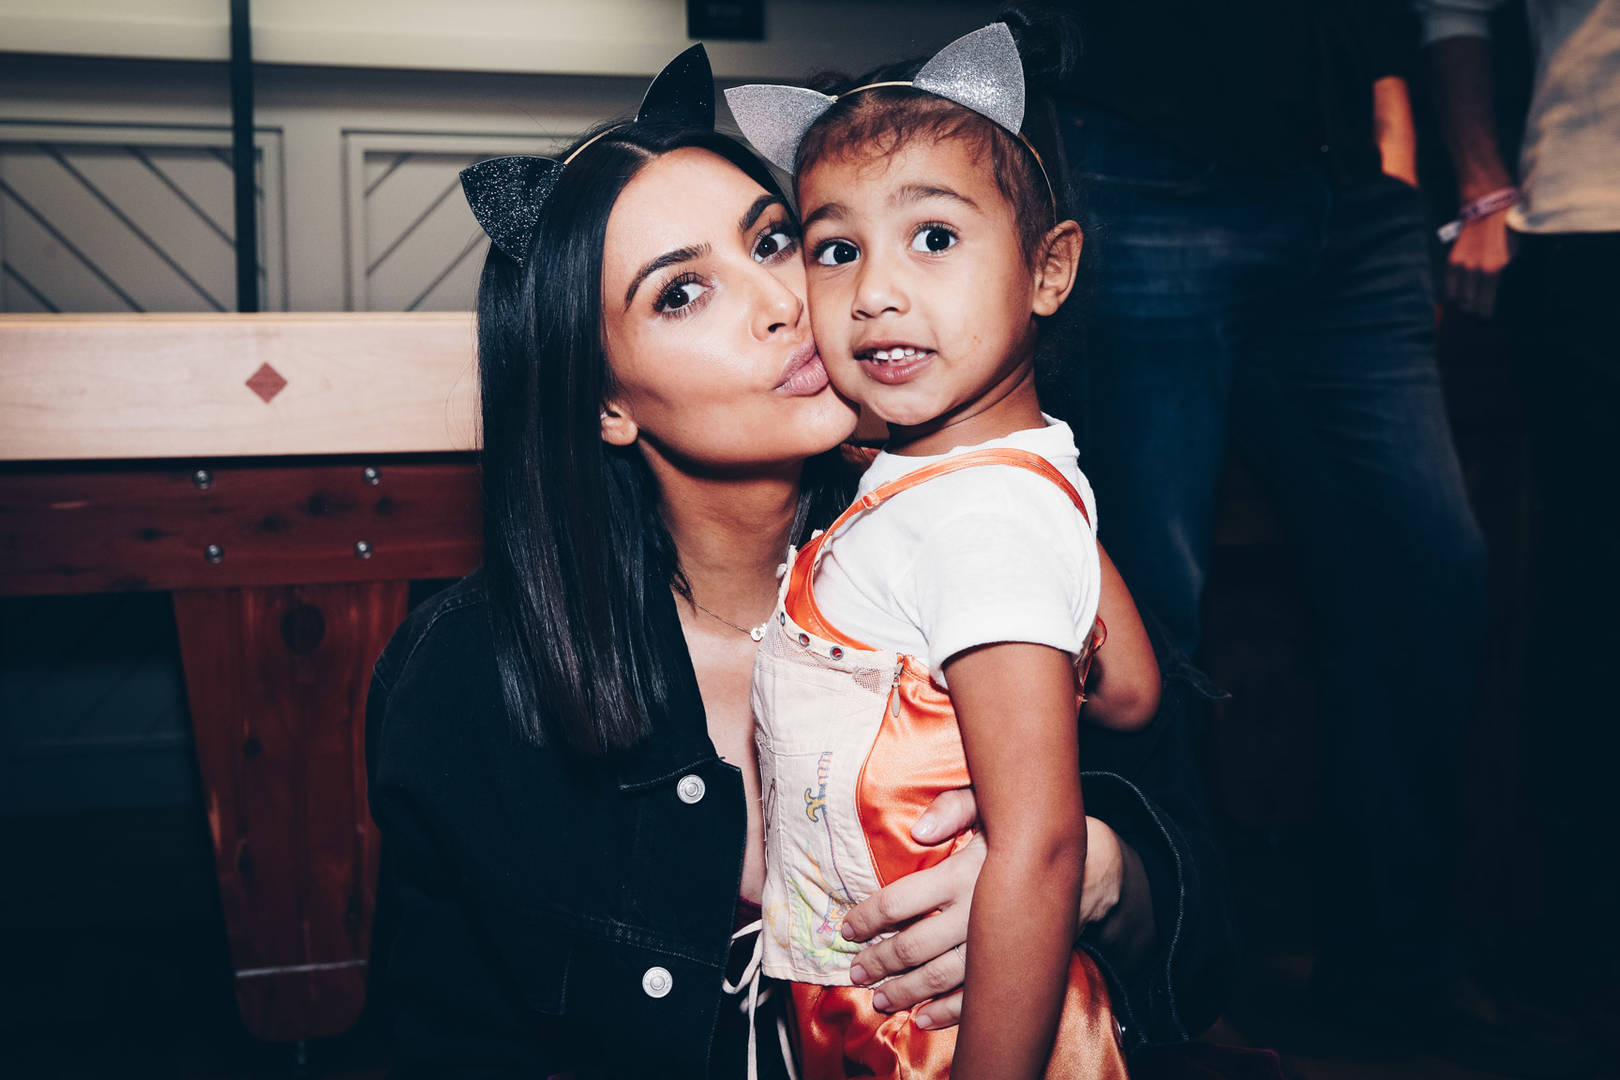 Kim Kardashian and North West Attend A Ariana Grande Concert Together (Rich Fury/Forum Photos via Getty Images)